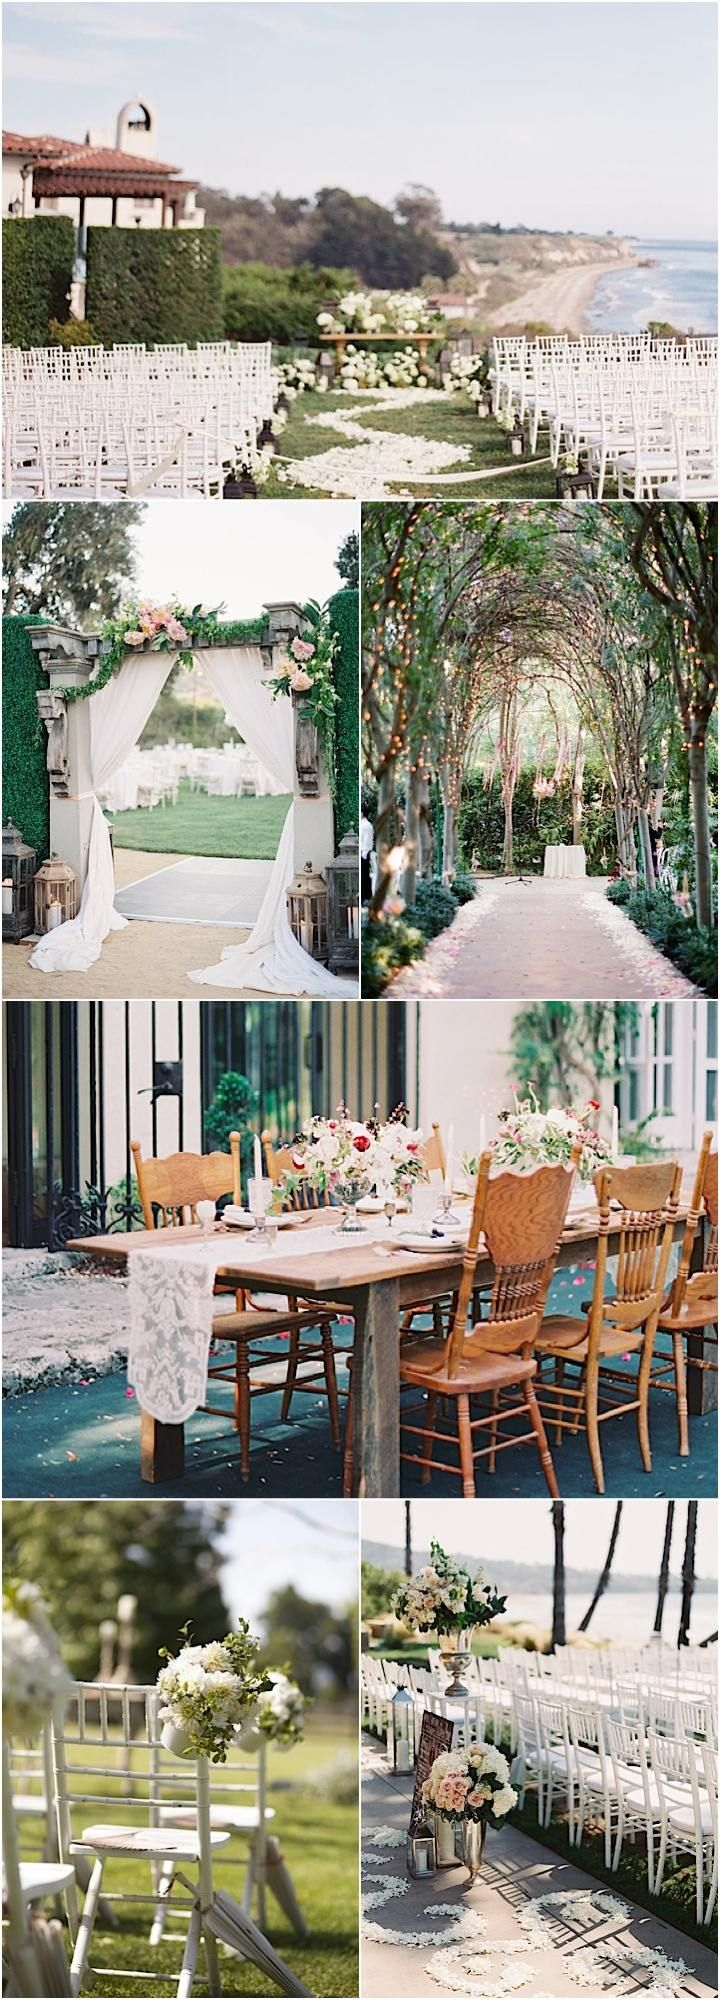 Fantastic Outdoor Wedding Ideas for Spring and Summer ...